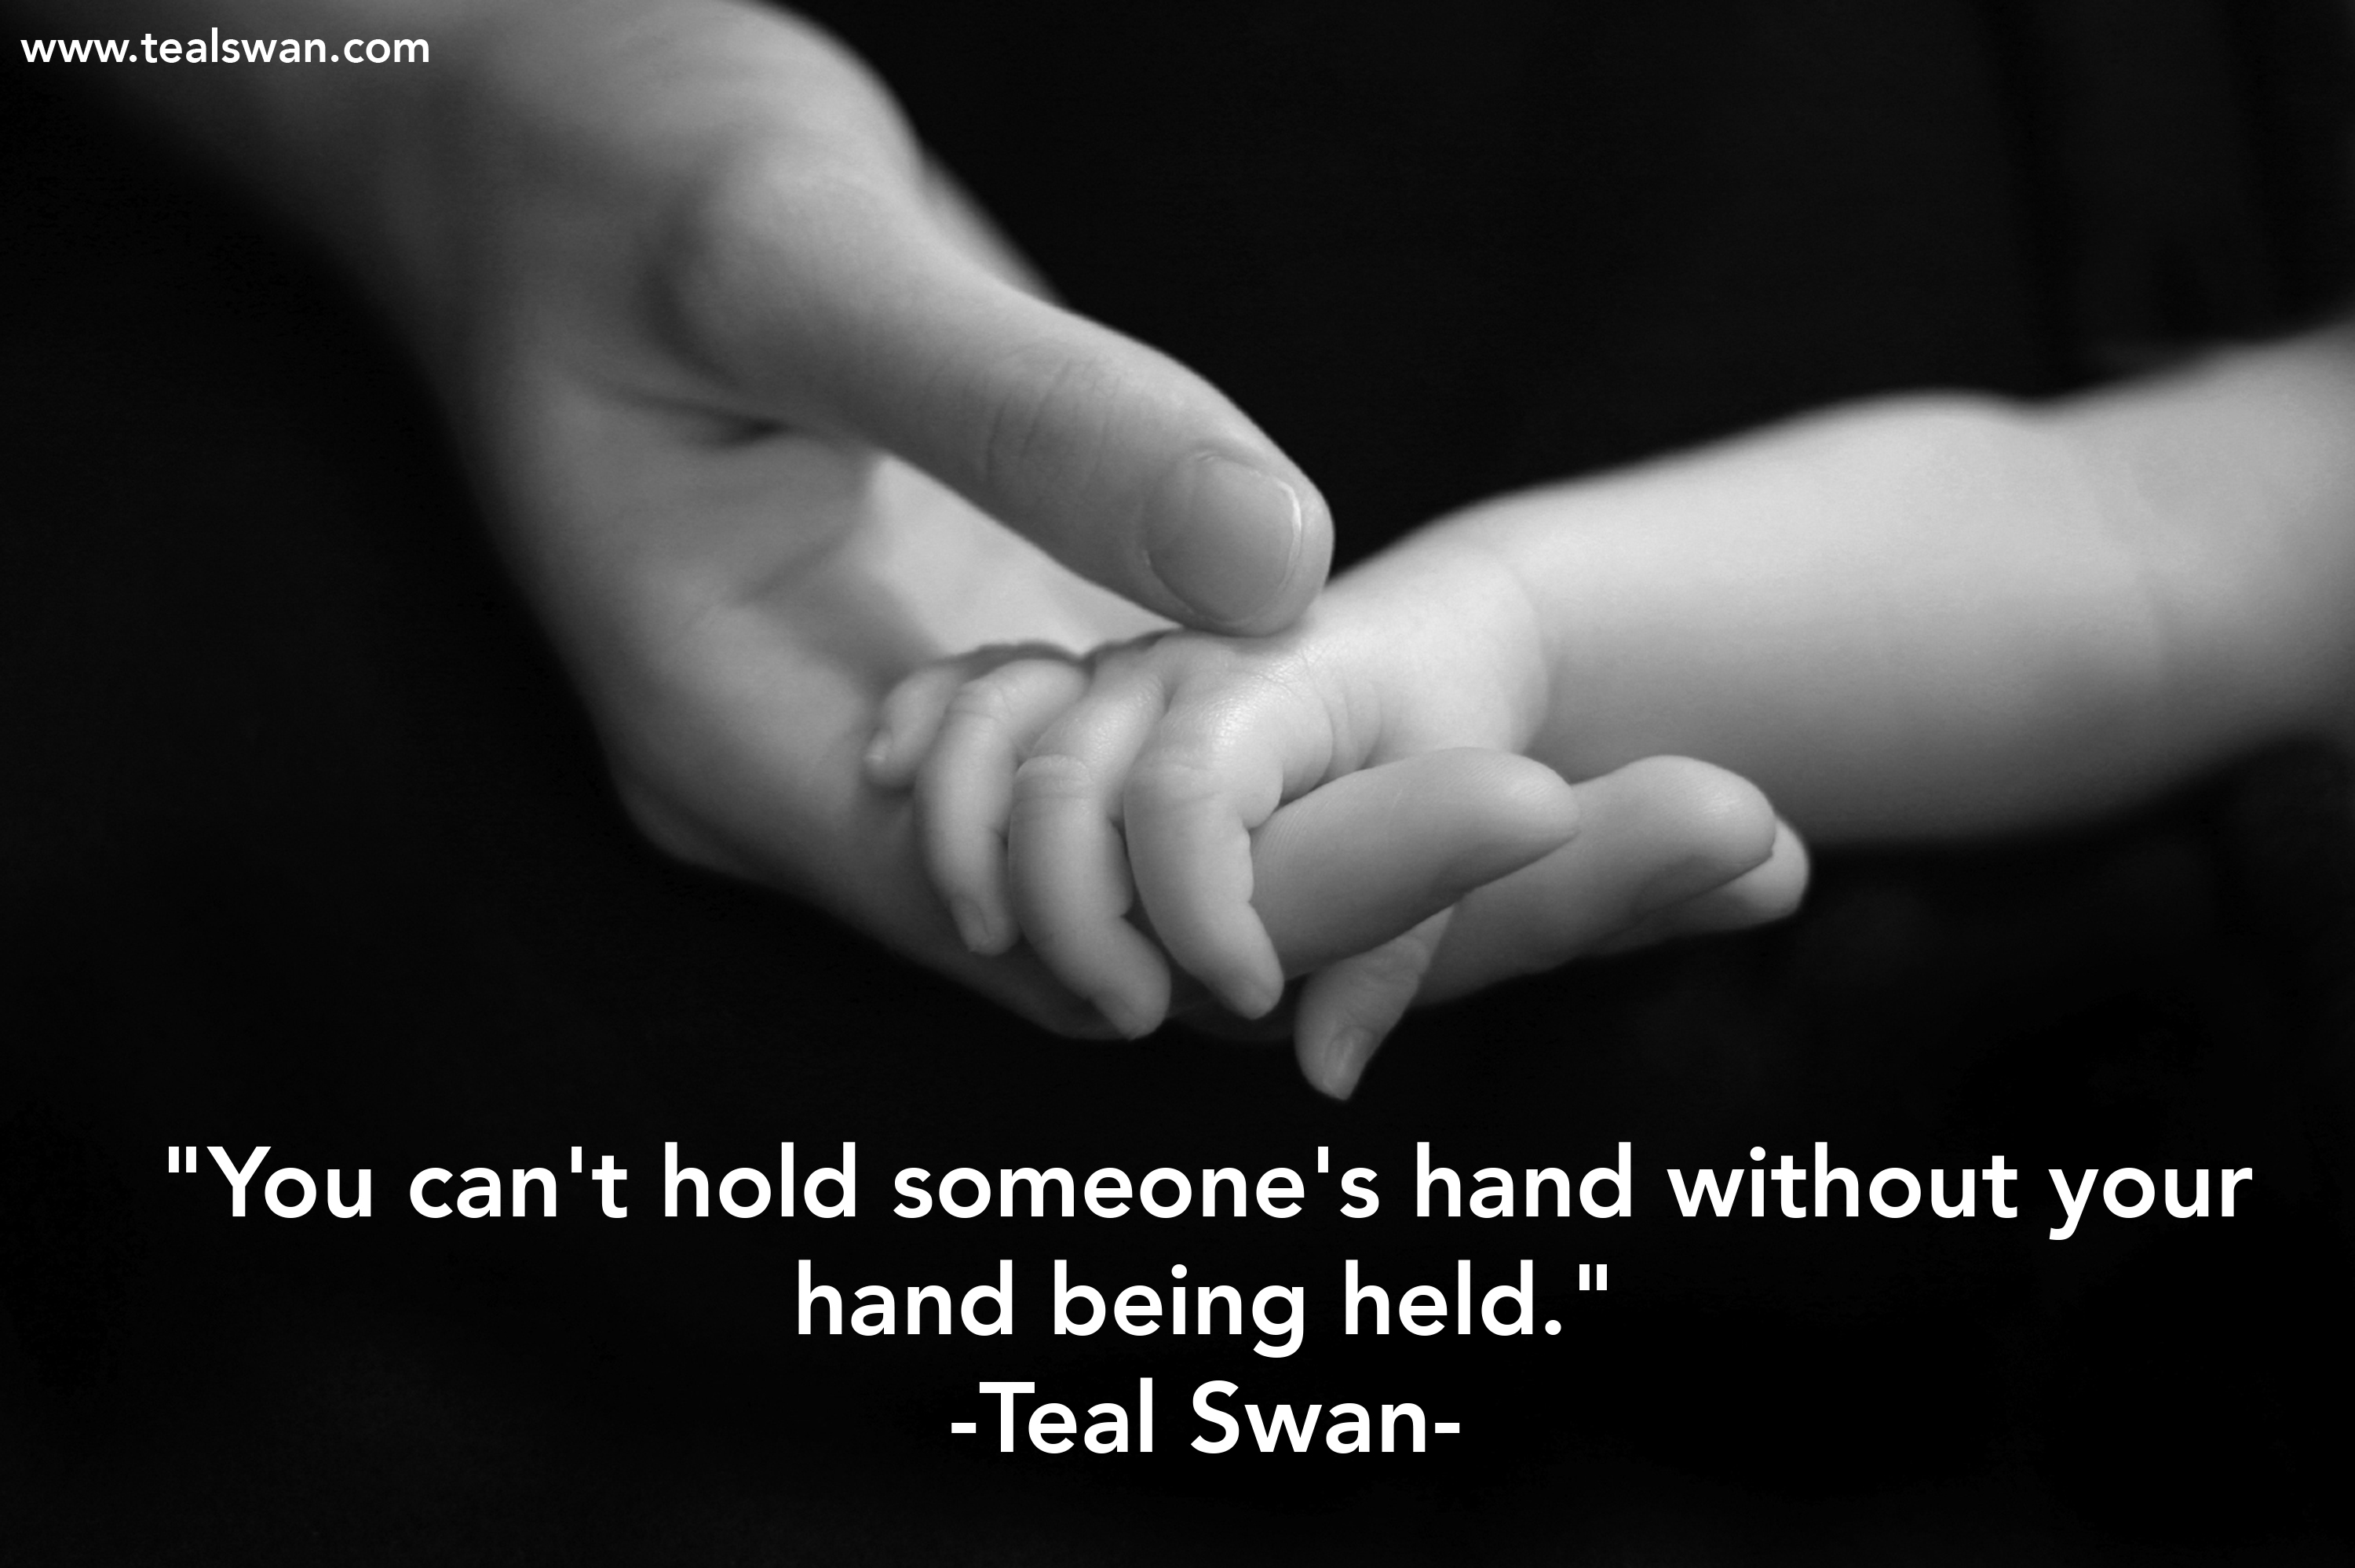 mother and child holding hands quotes relationship